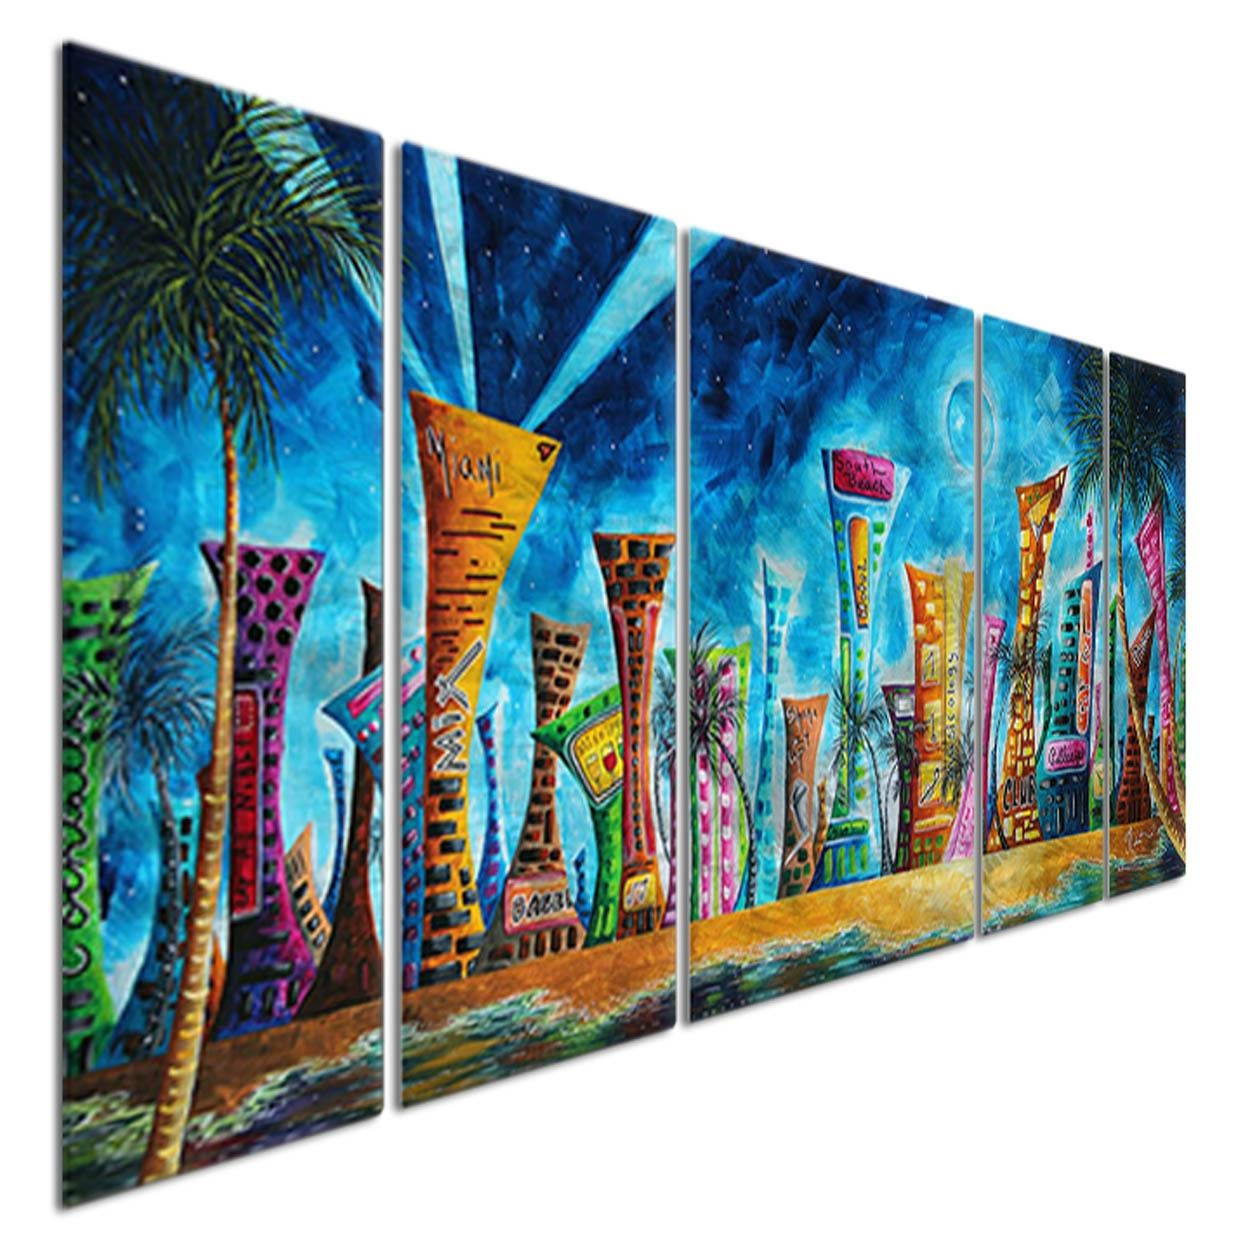 Metal Wall Art Miami Night Life Megan Duncanson Abstract Cityscape With Most Up To Date Megan Duncanson Metal Wall Art (View 7 of 25)